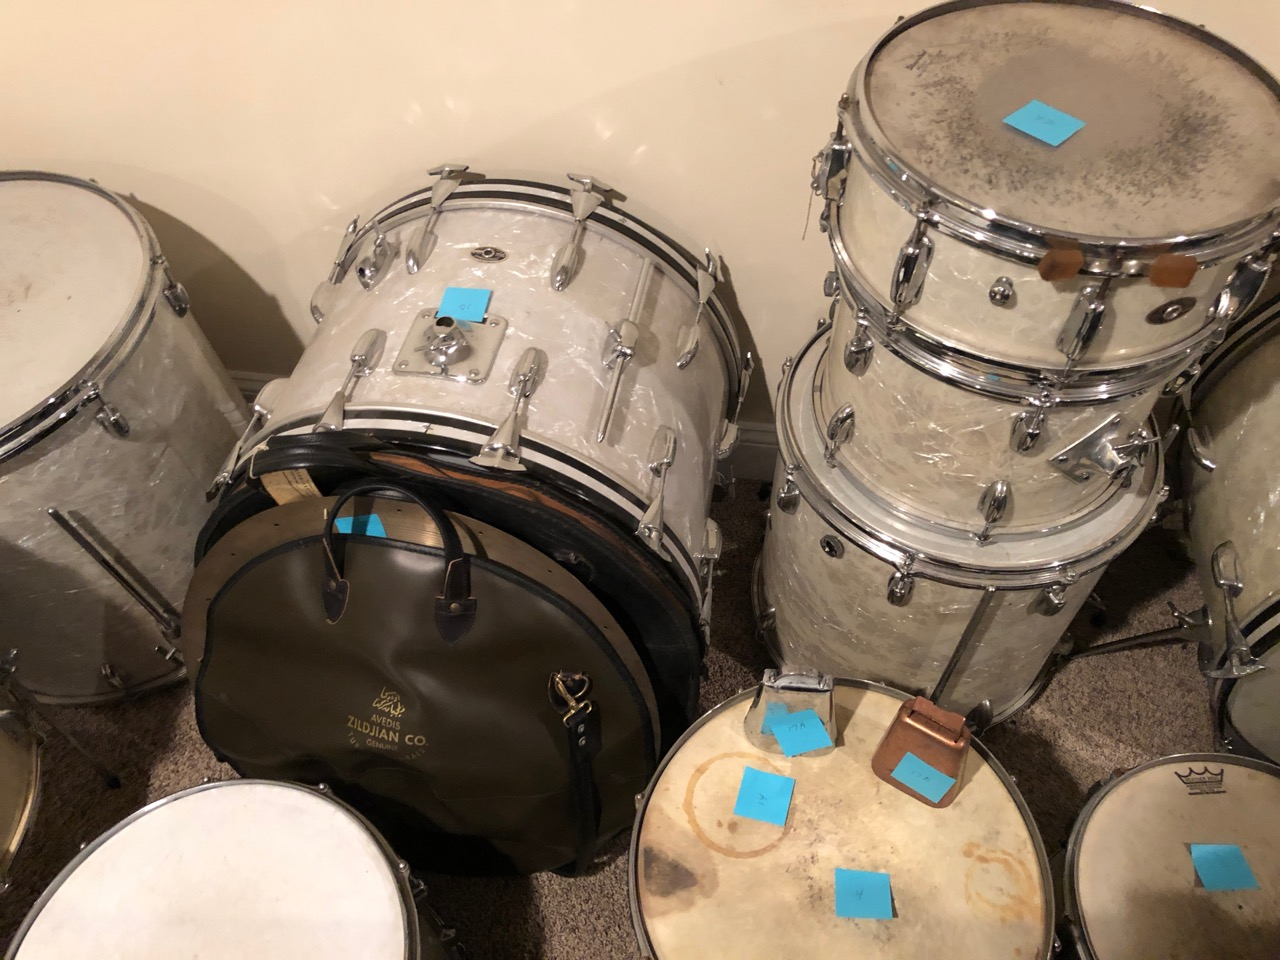 Gene Krupa's drums, Gene Krupa's cymbals, Famous jazz drummers drums, collectable vintage drums, collectible musical instruments, Benny Goodman